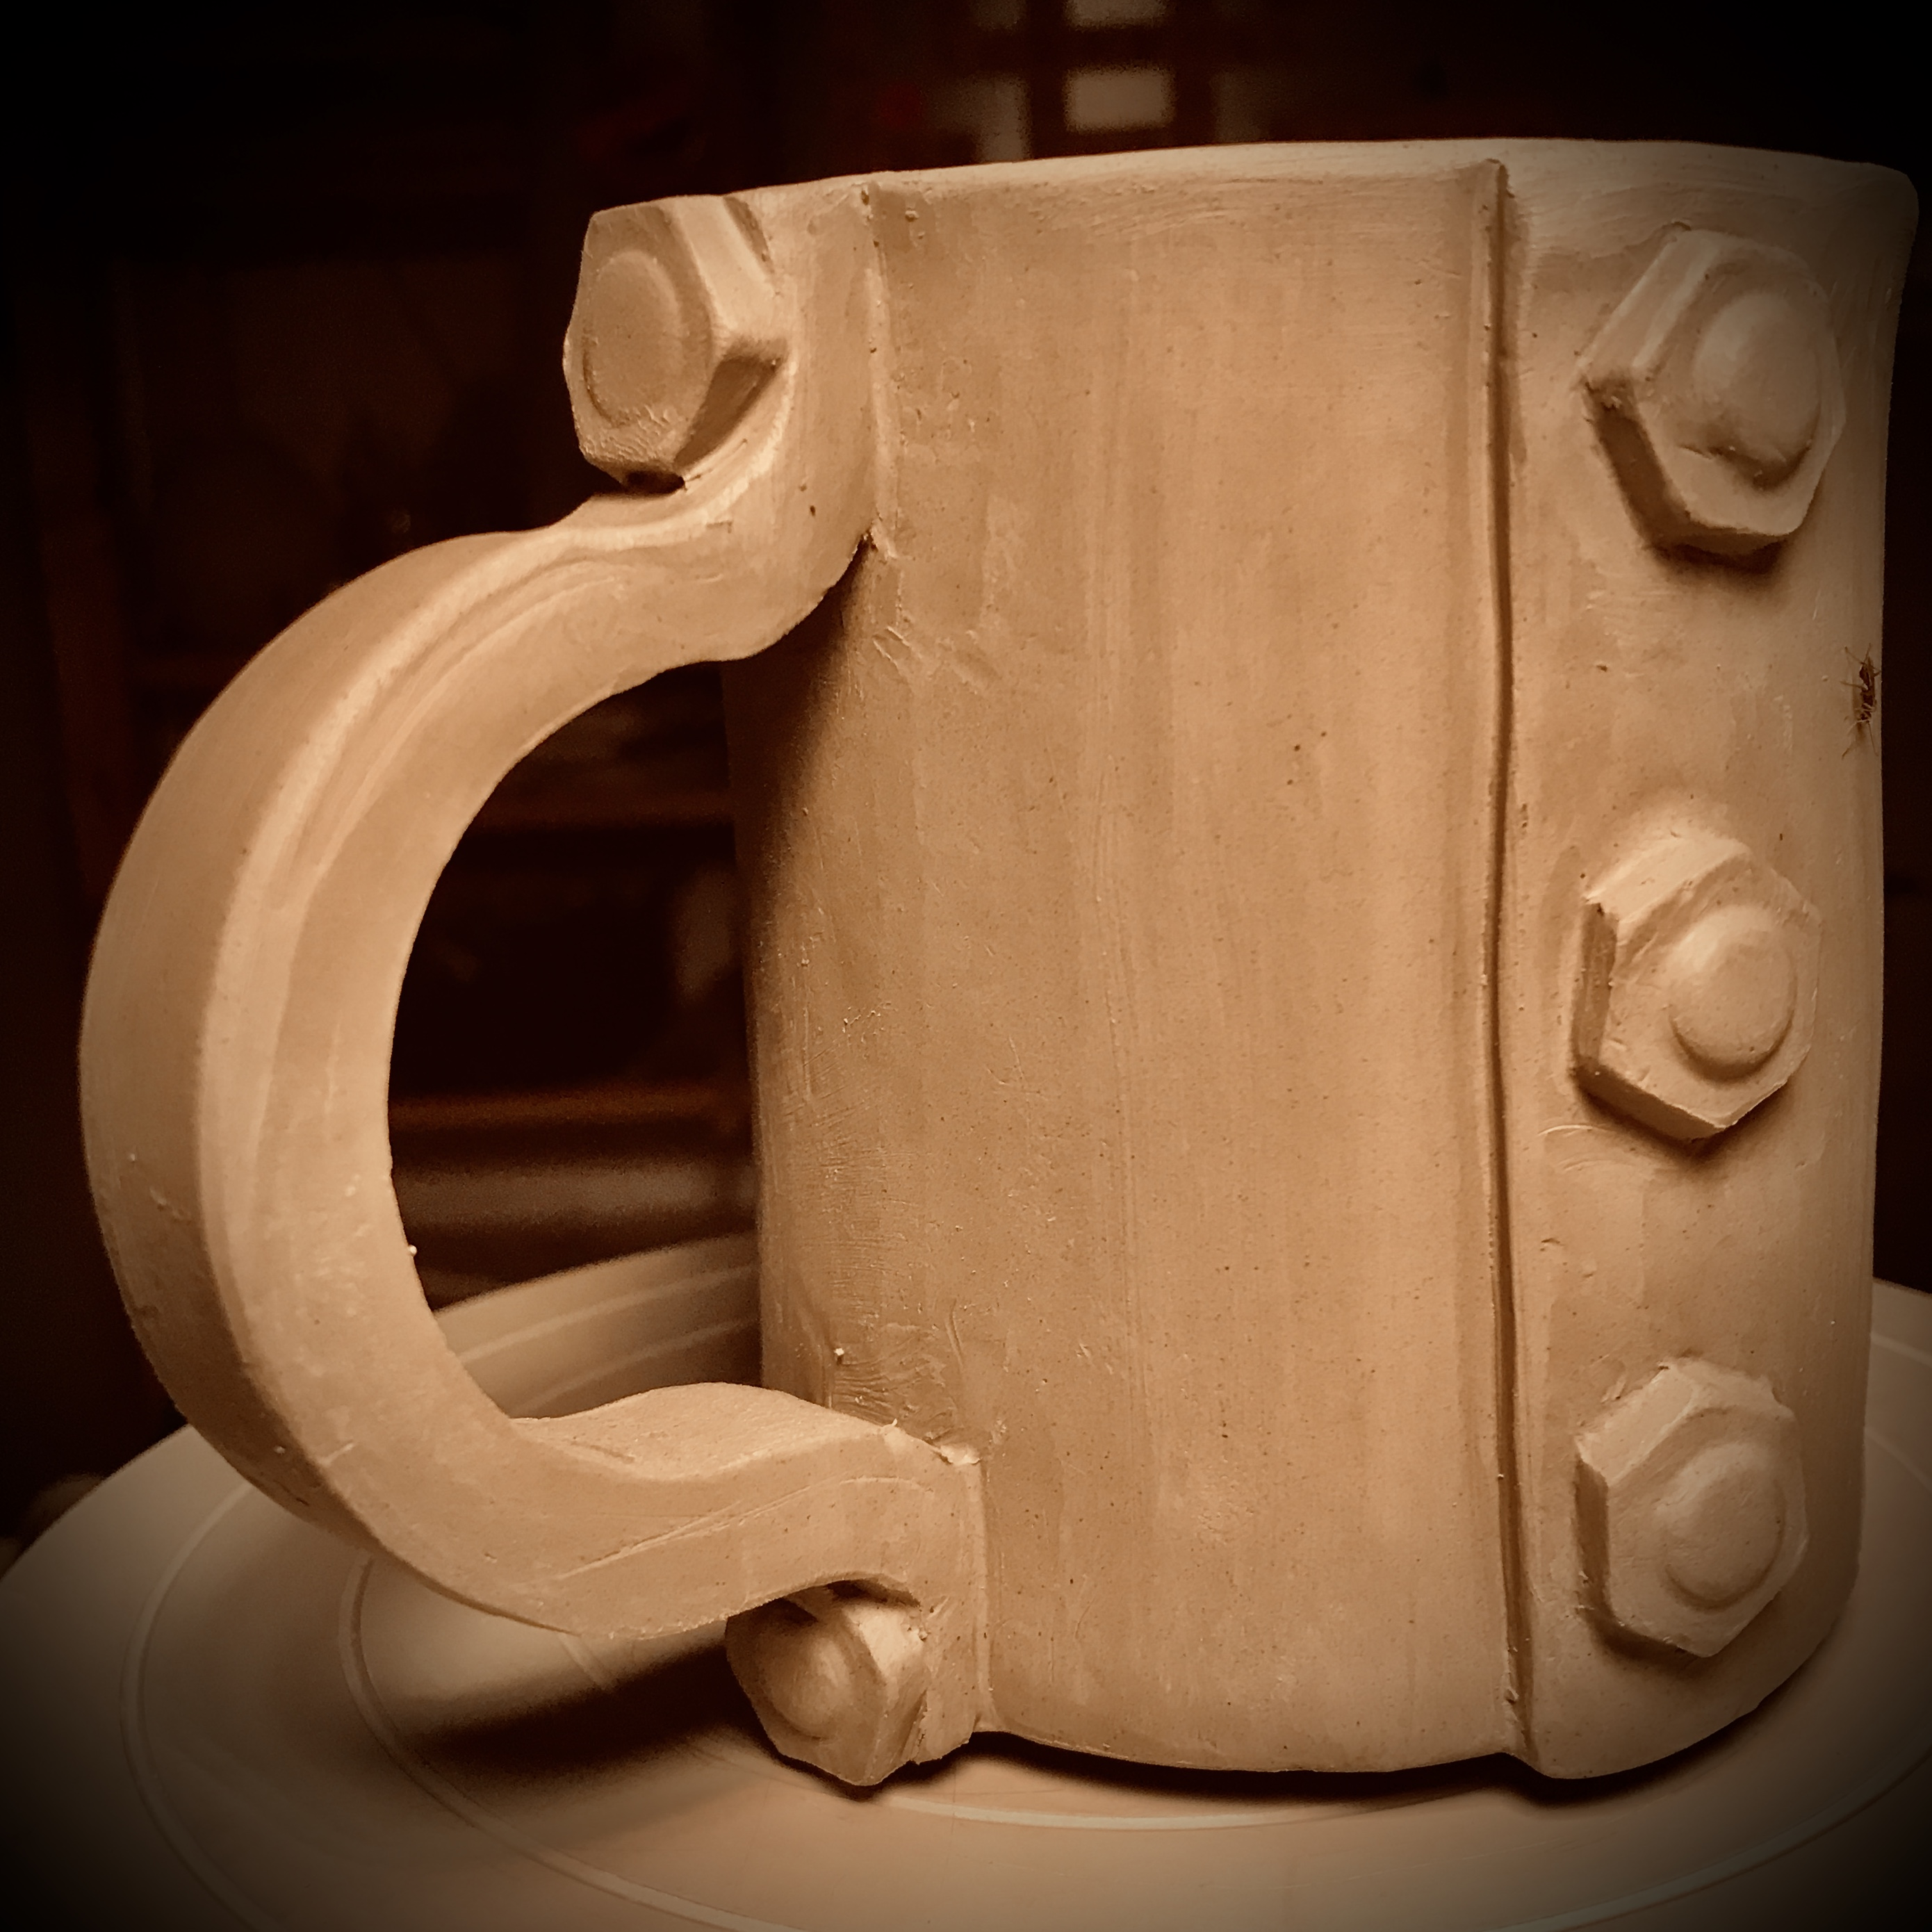 Mechanical mug